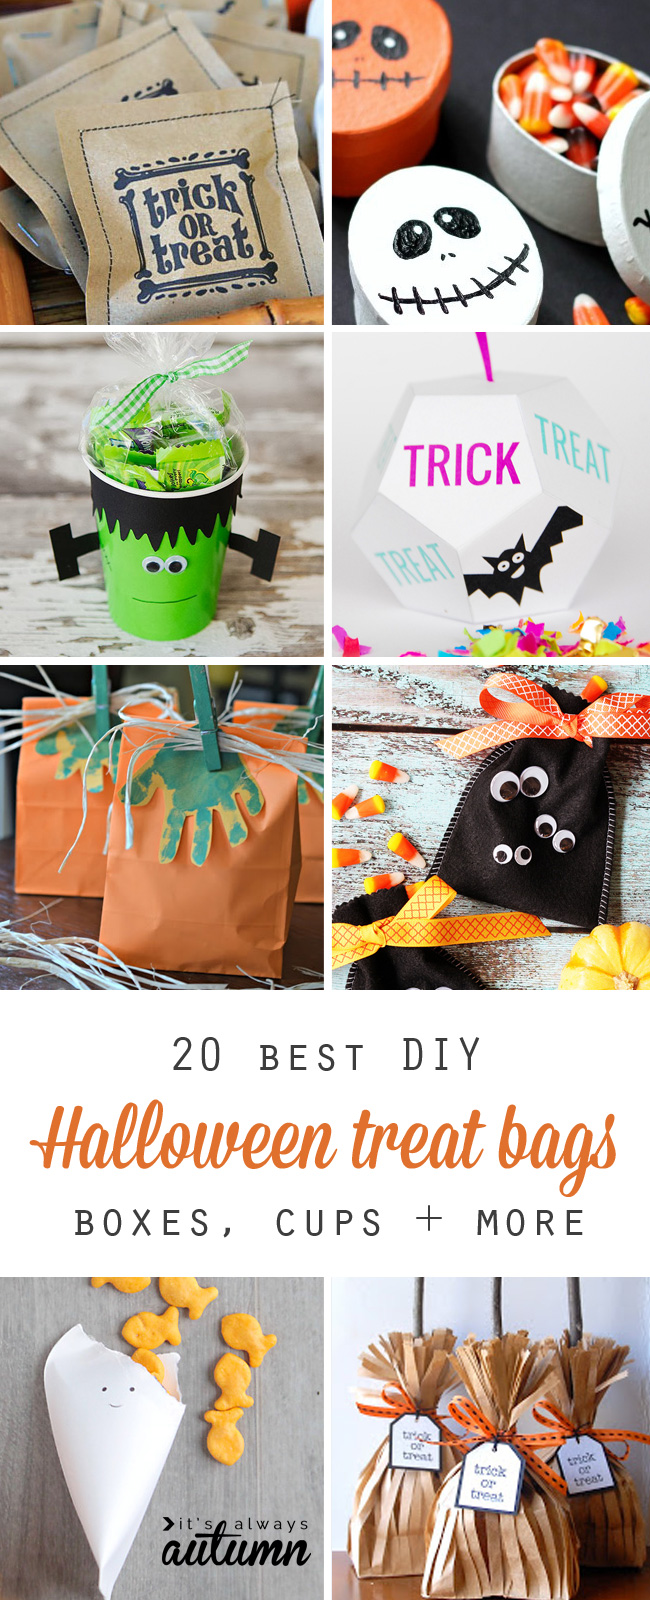 20 cute & easy diy halloween treat bags and boxes - it's always autumn